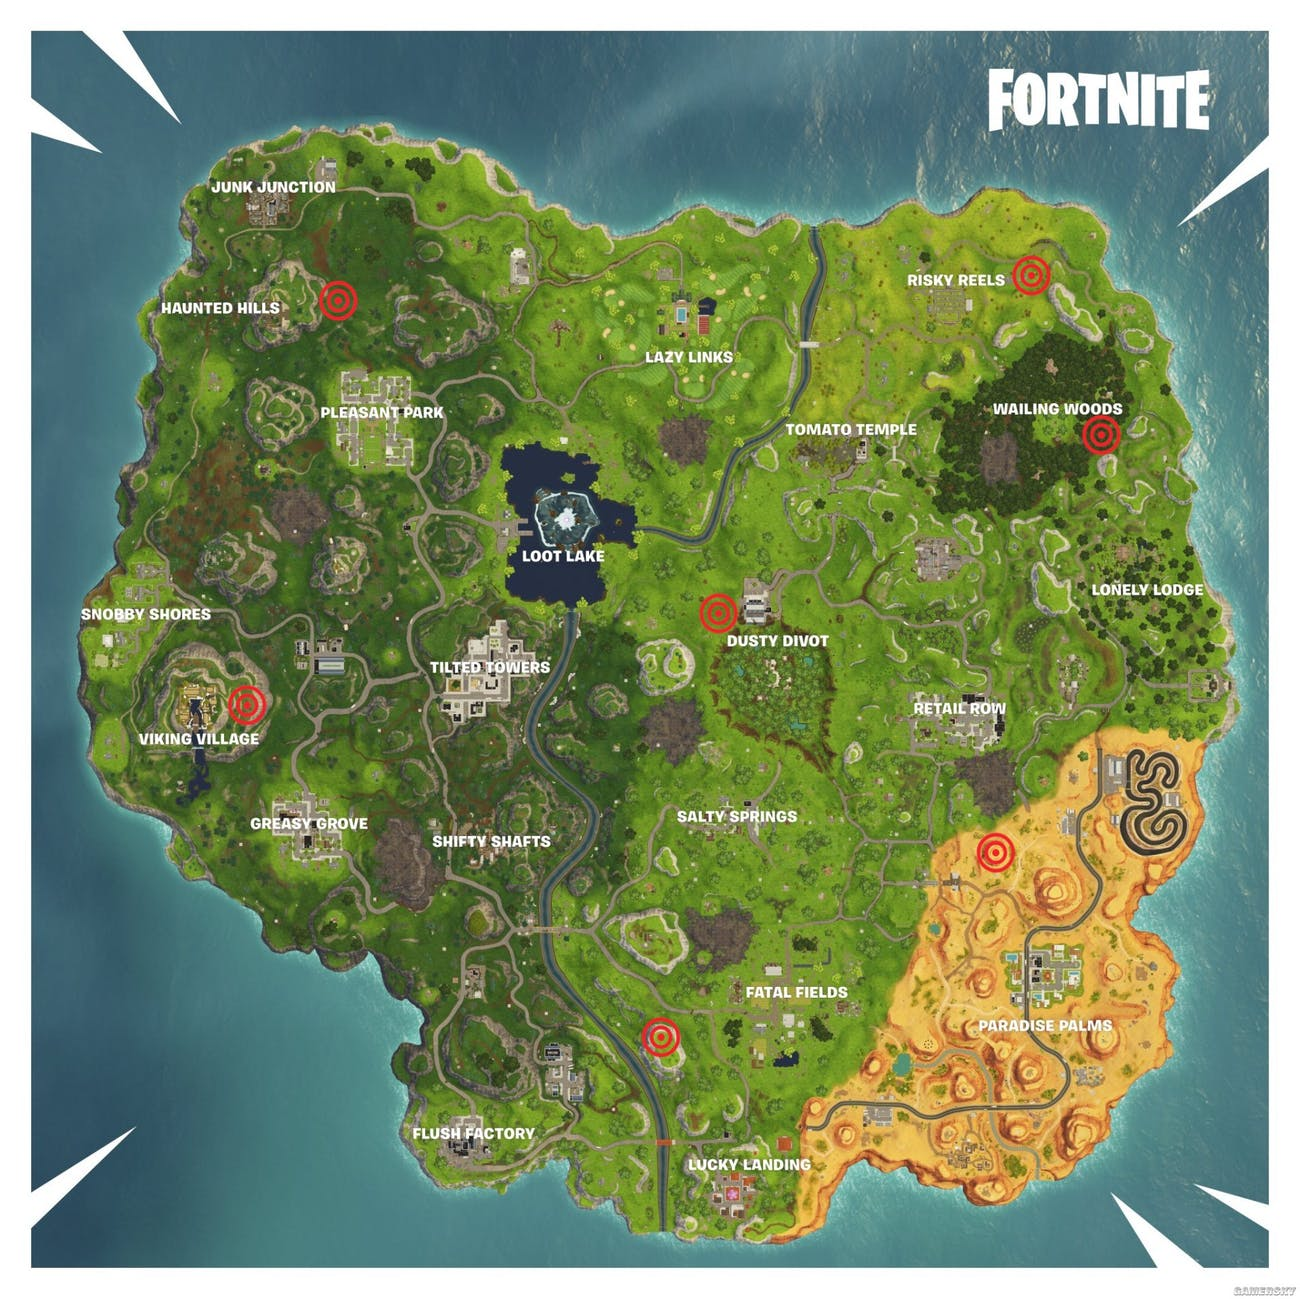 Fortnite Shooting Gallery Locations Where To Find Them On